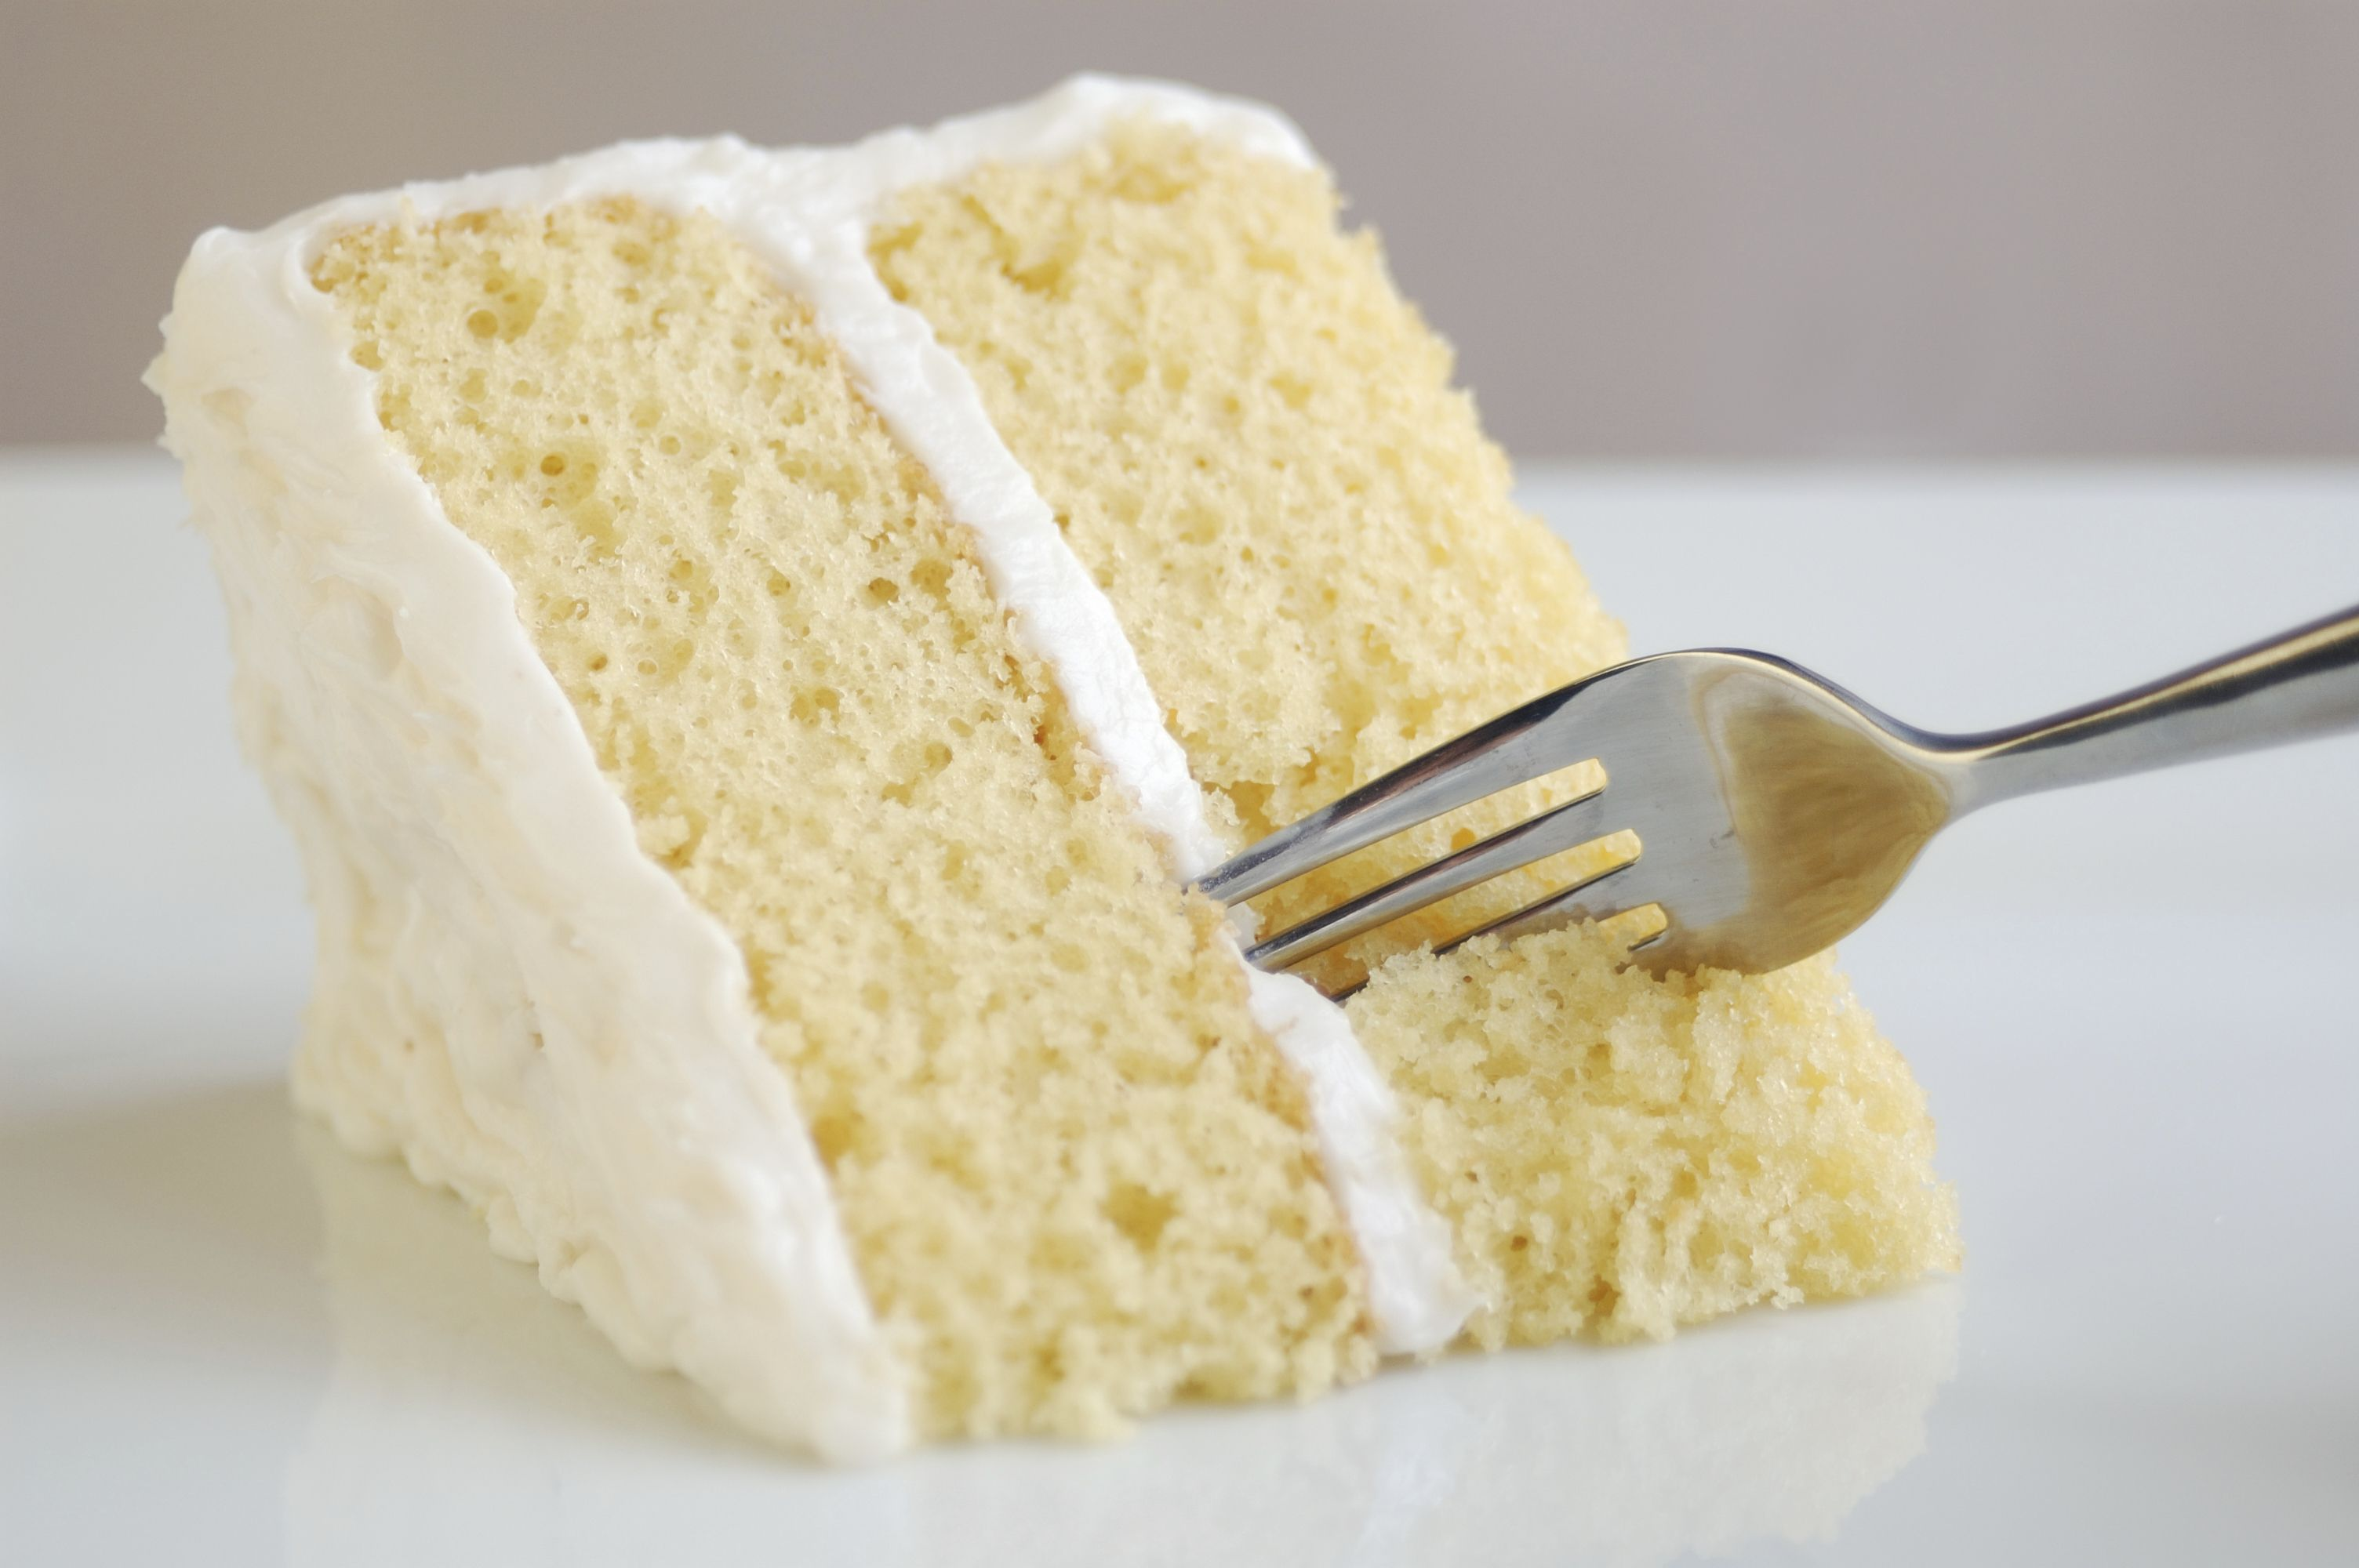 Best Vanilla Cake Recipe How To Make Easy Vanilla Cake From Scratch